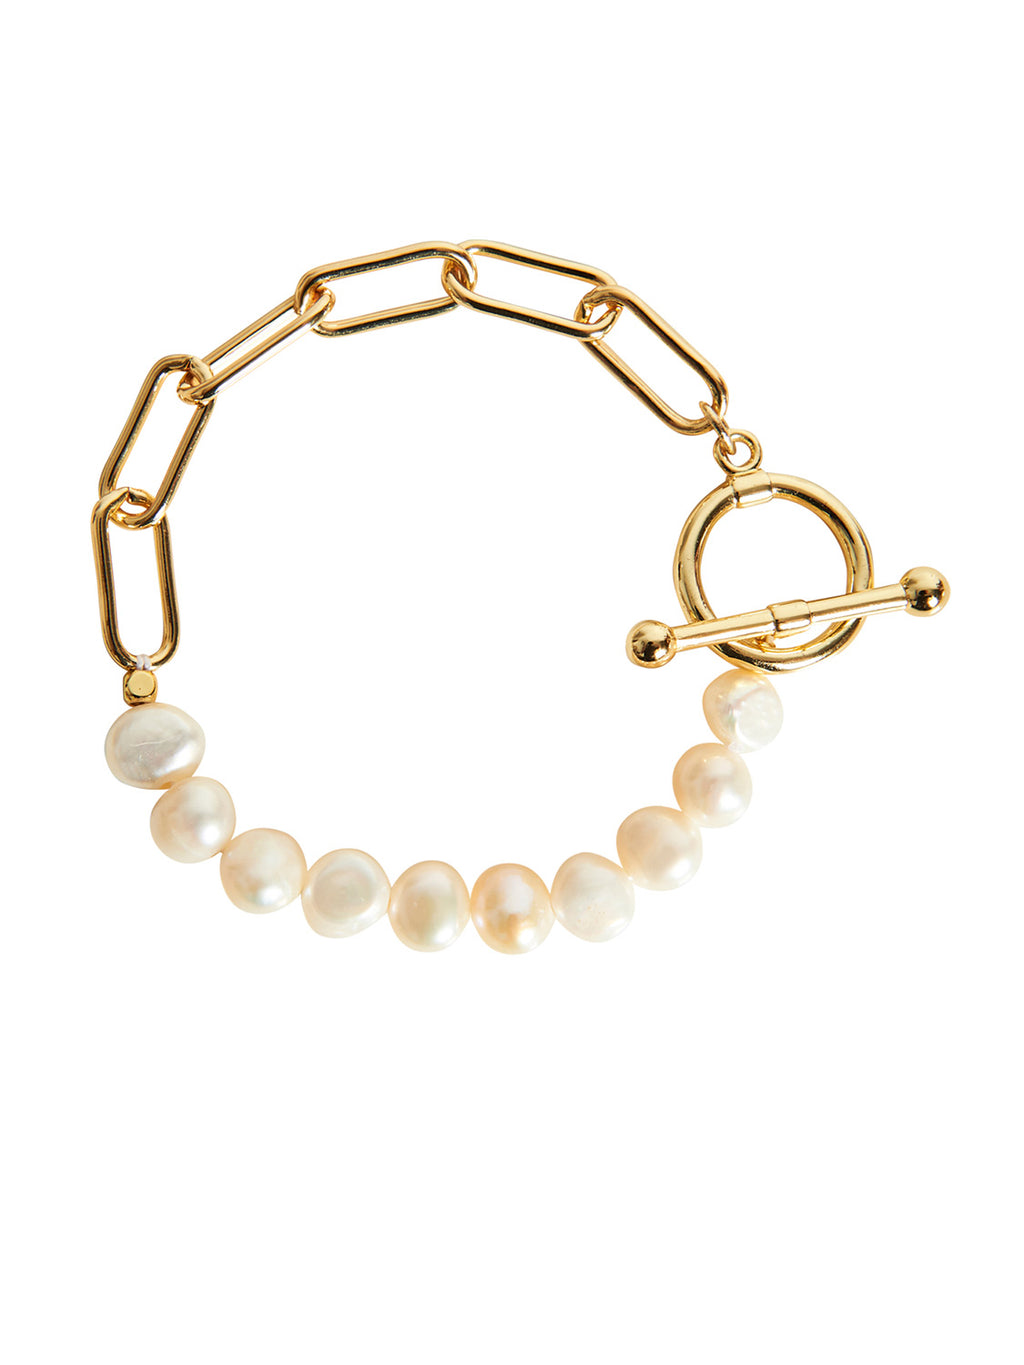 Tranquil Chain Bracelet - Pearl